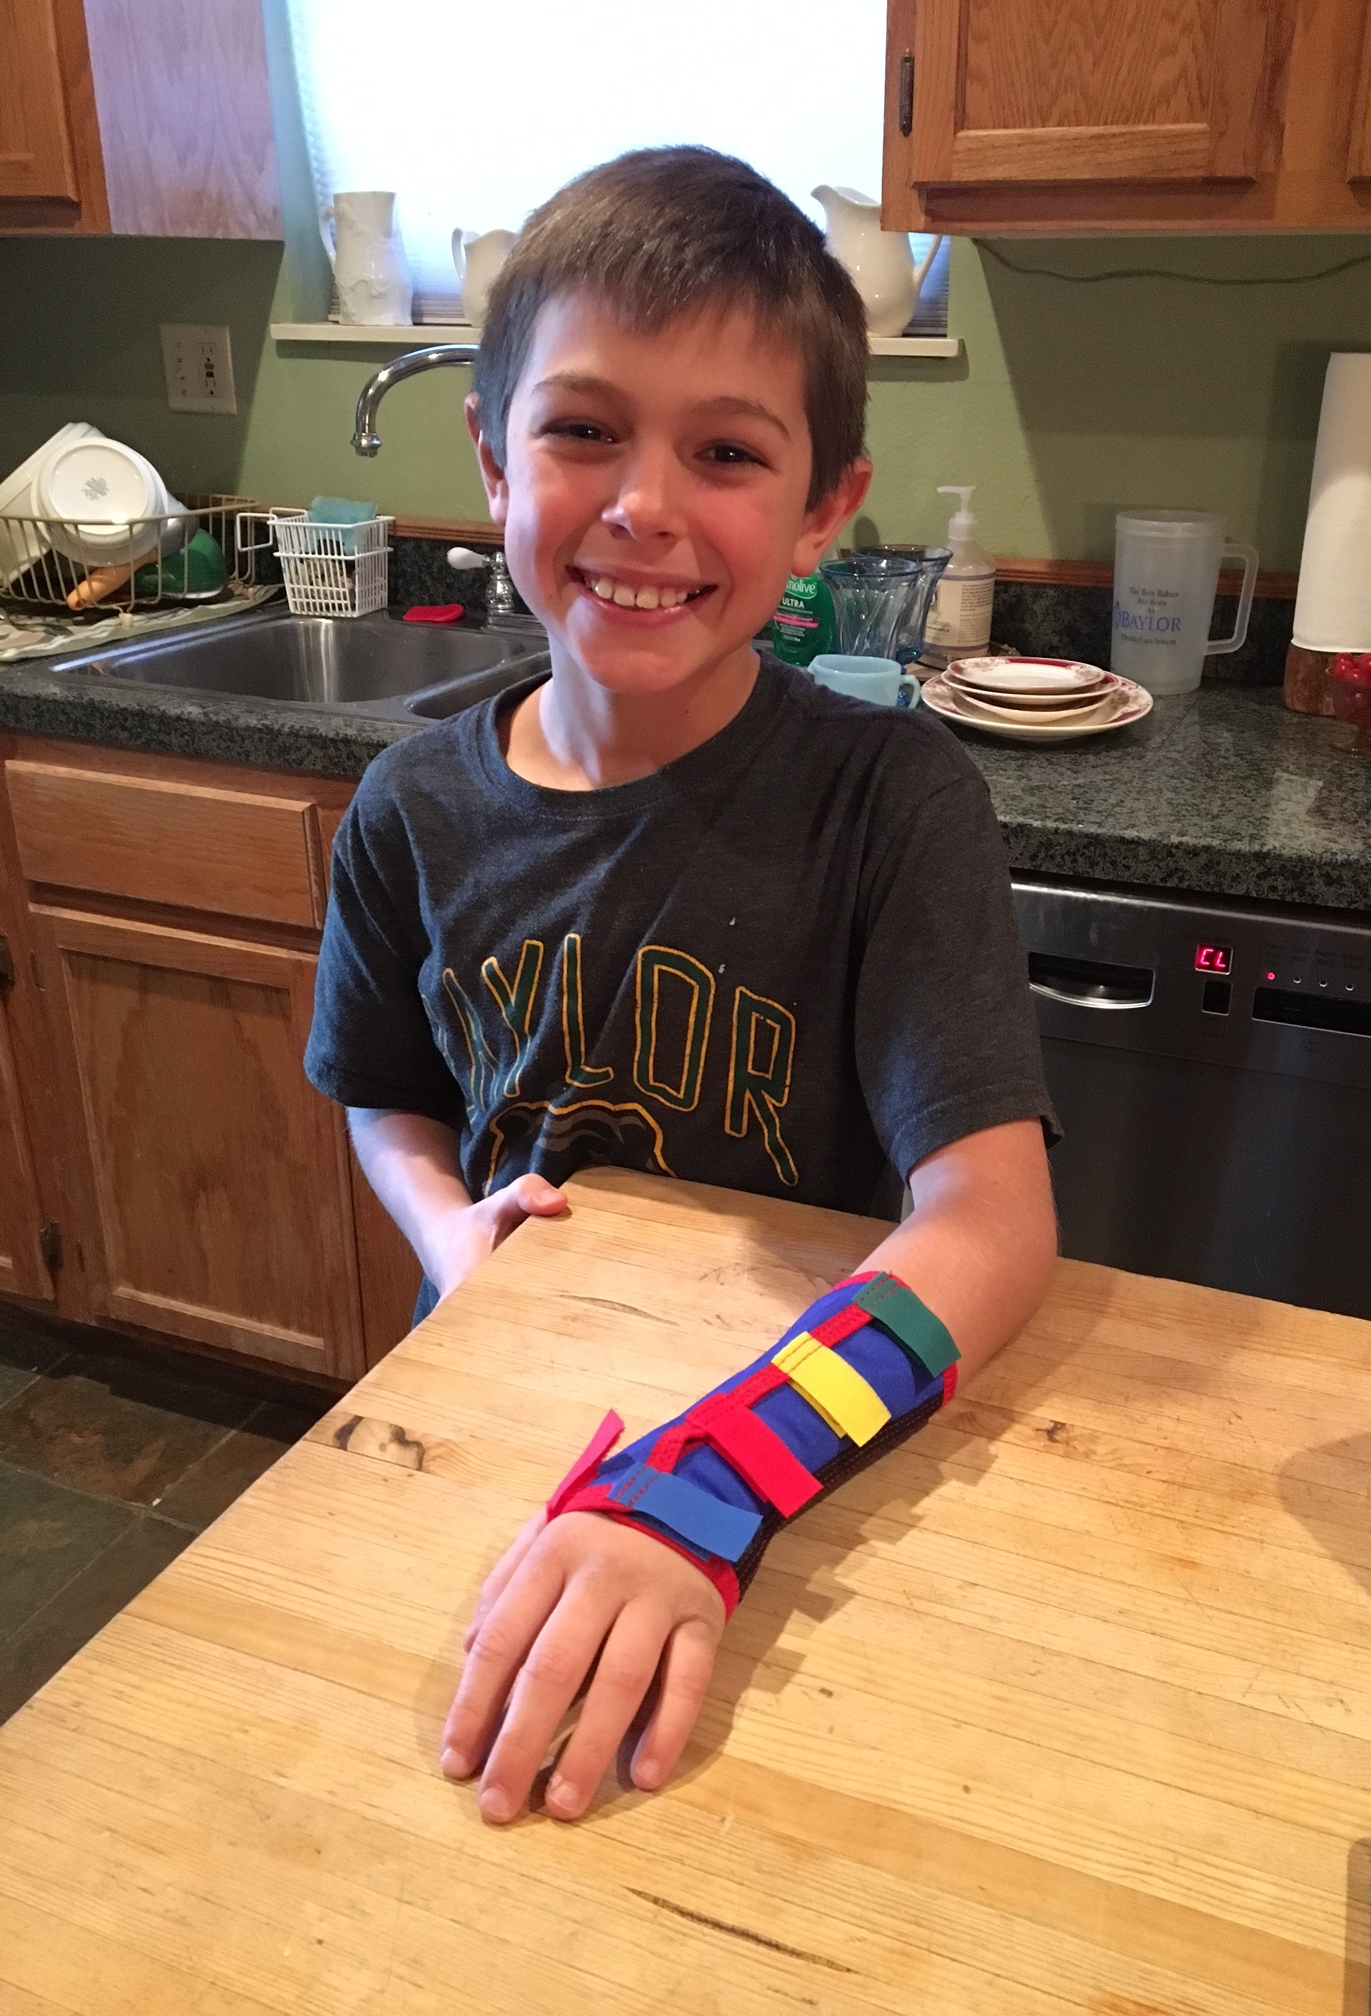 my son showing his cast